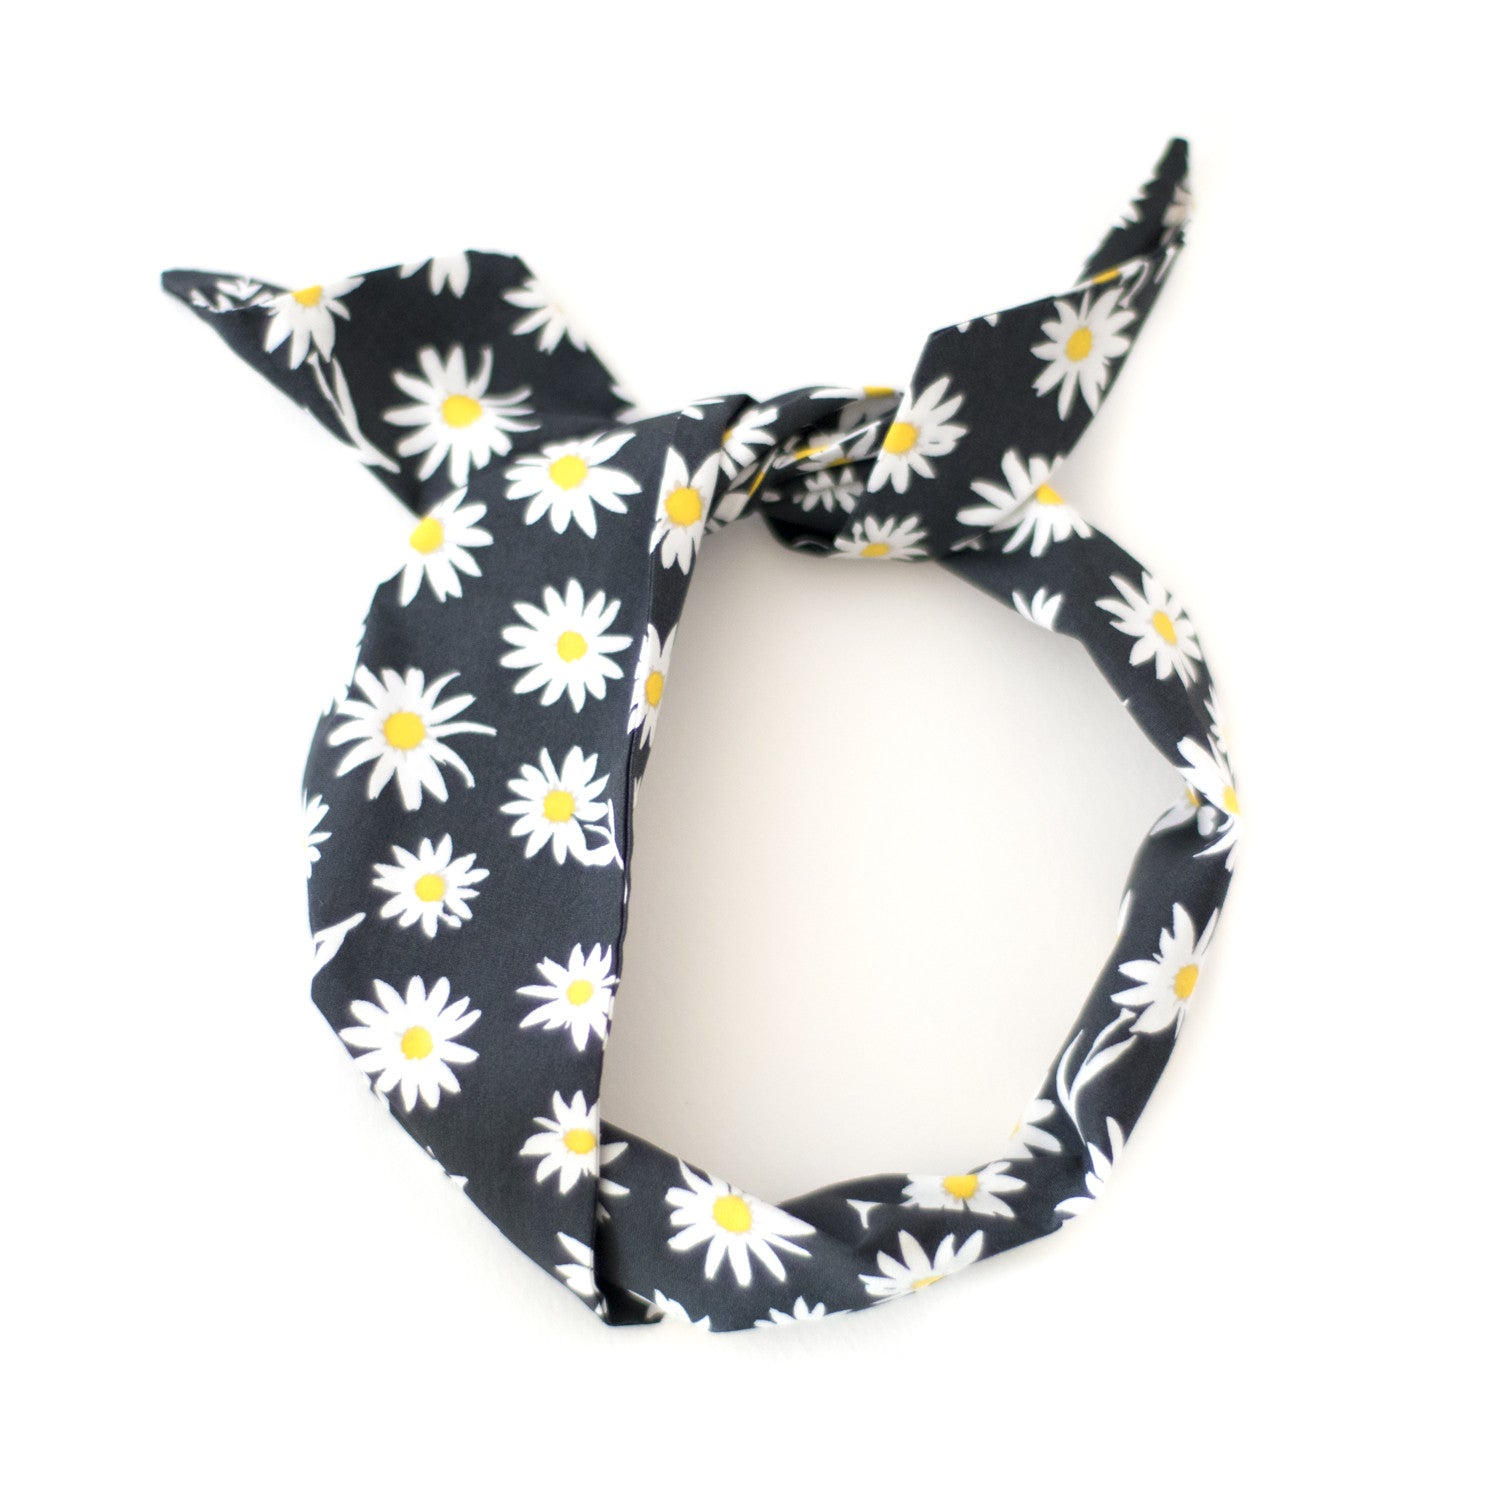 daisy print floral wire headband easy to style